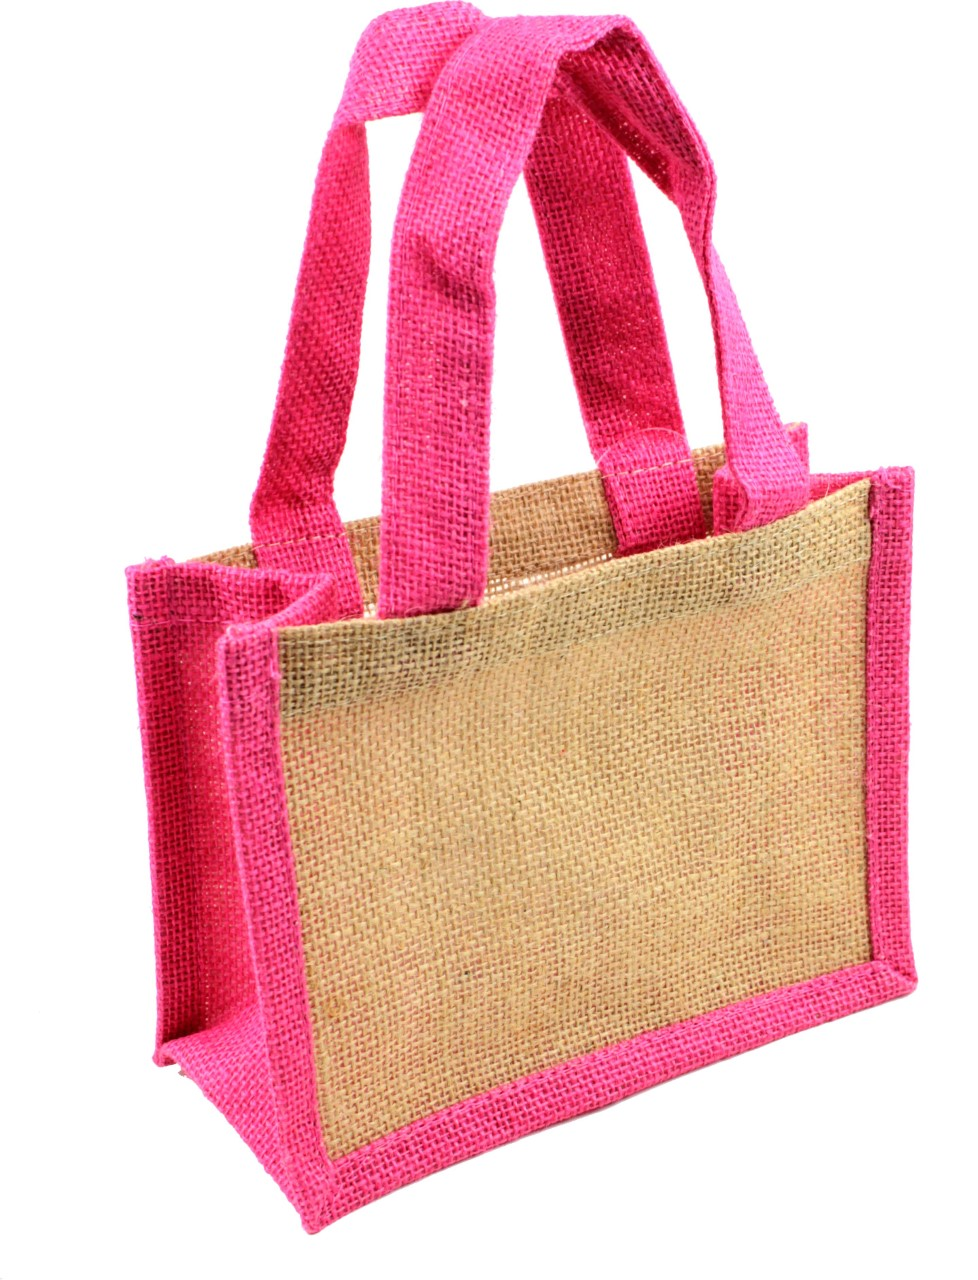 "8""W x 6""H x 4""D Burlap Tote With Pink Wall & Handle"